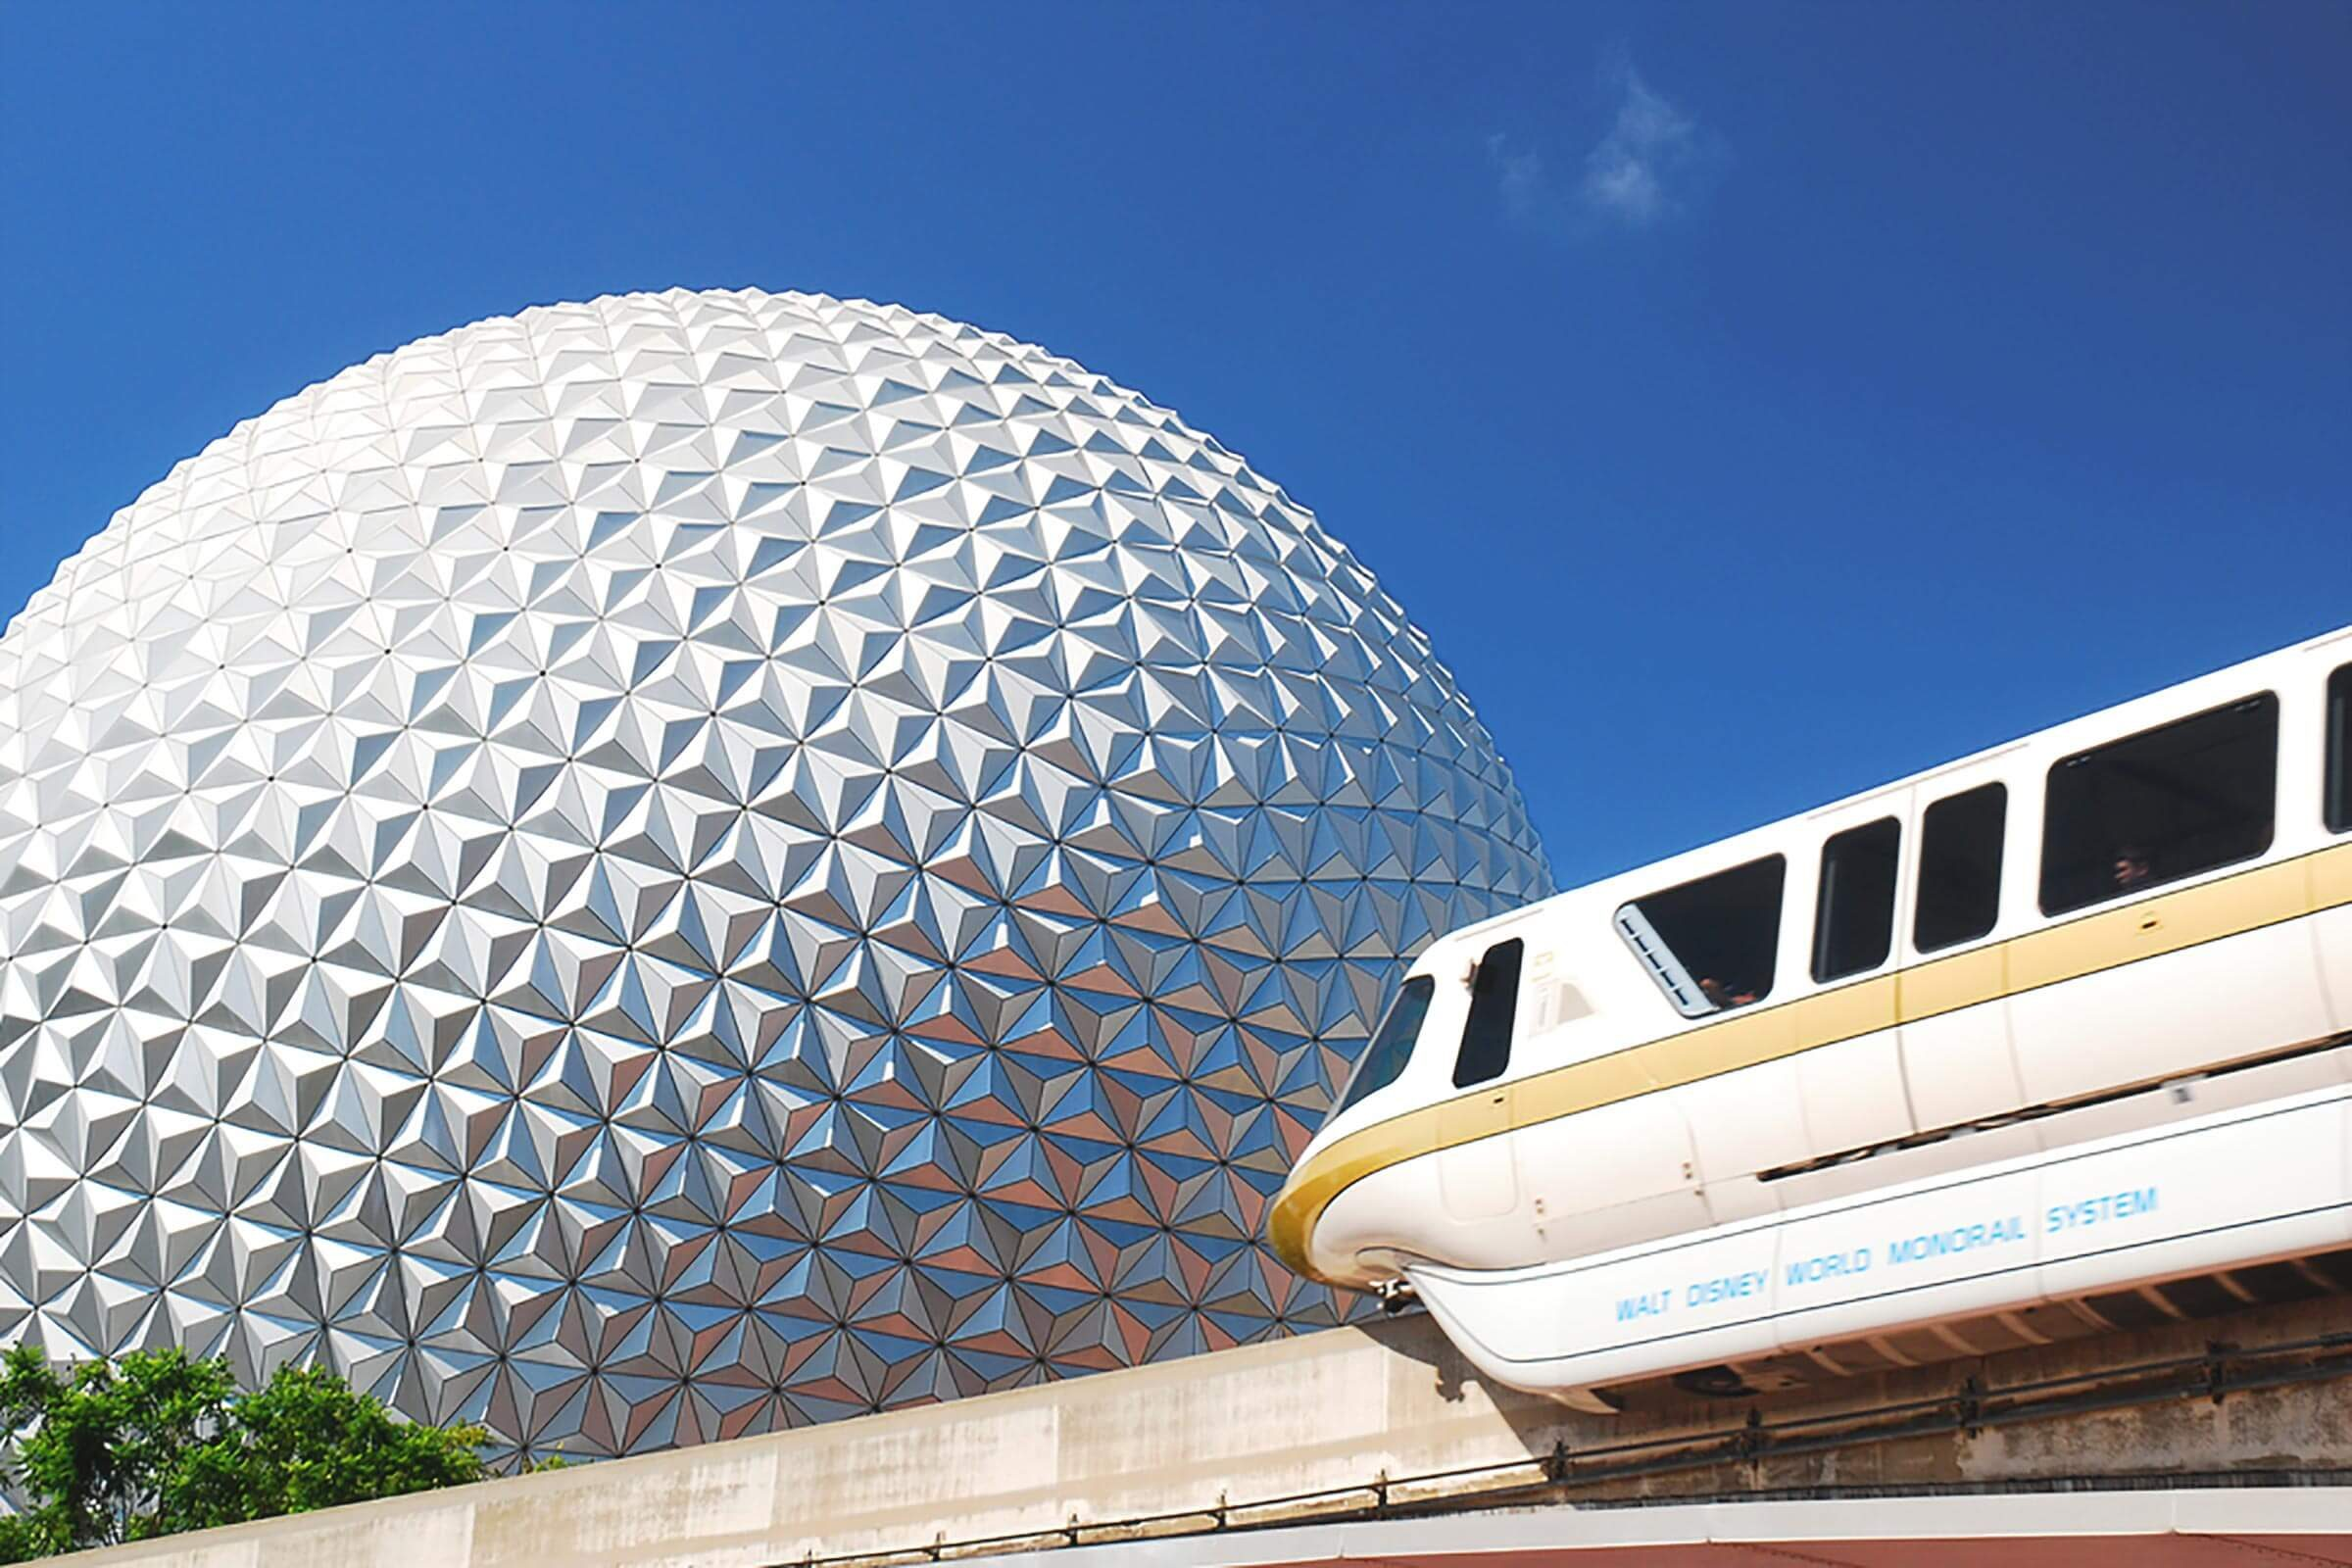 Orlando, FL, USA July 22, 2011 A monorail passes in front of Spaceship Earth at Epcot Center in Walt Disney World in Orlando, Florida